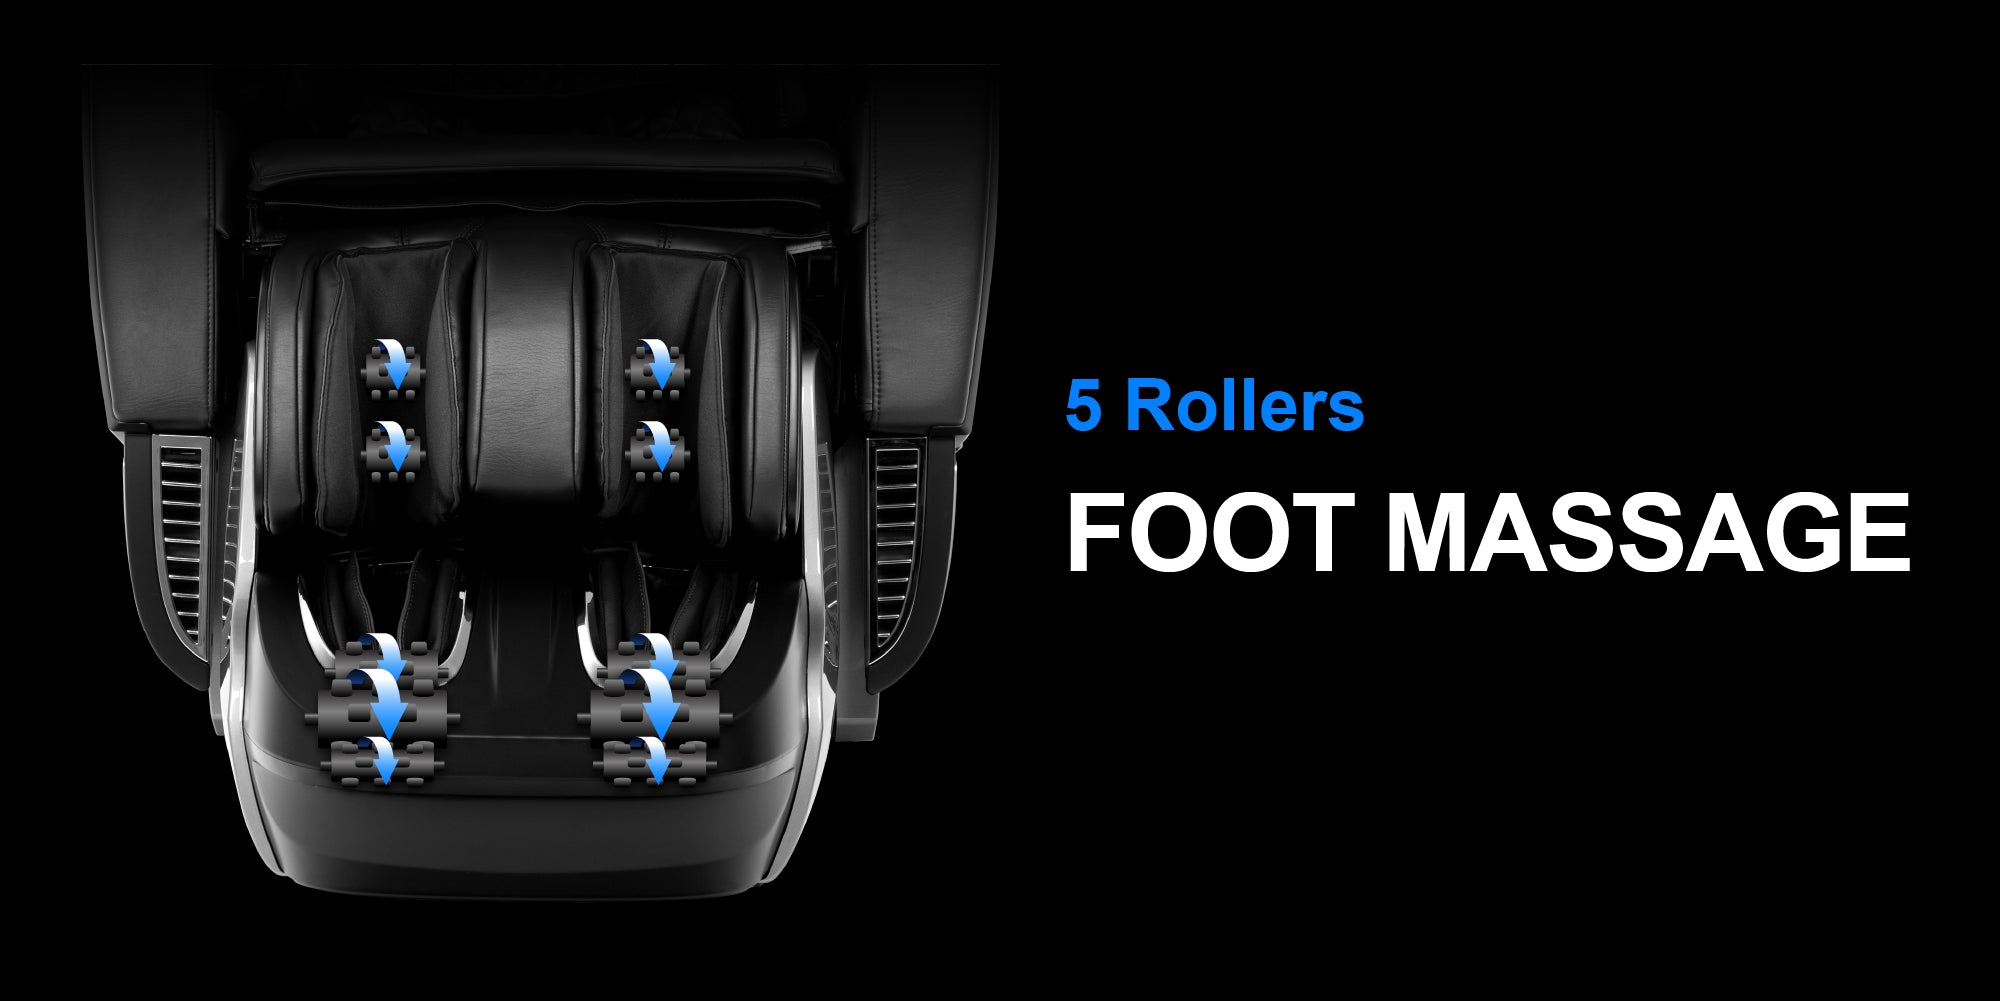 5 Rollers Foot Massage